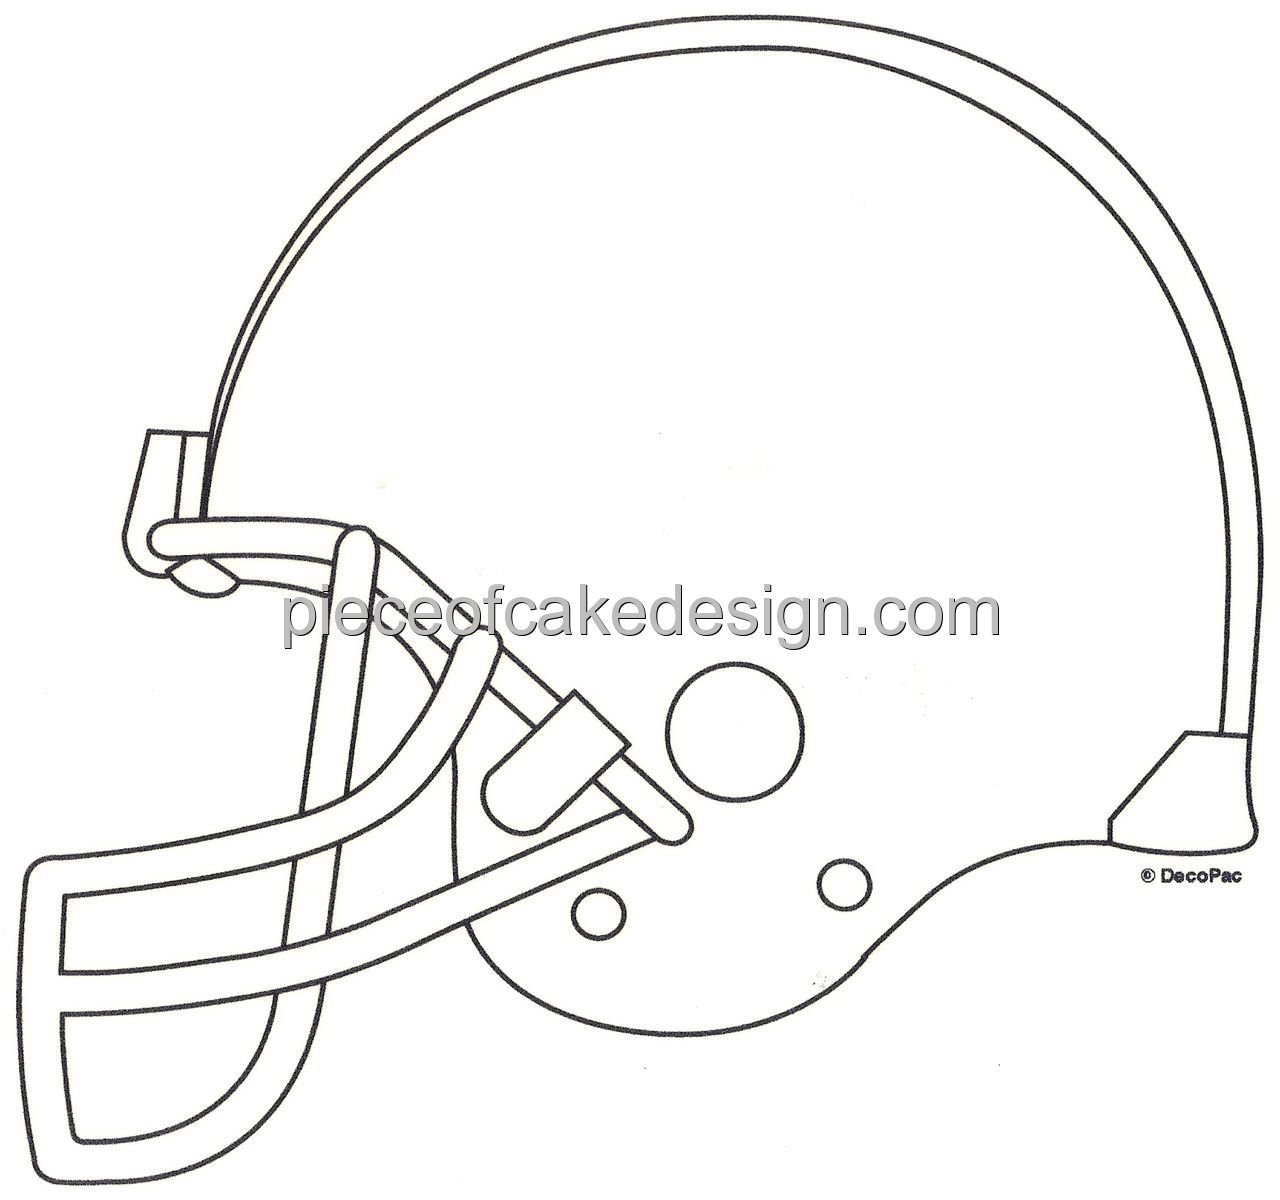 Easy Football Helmet Drawing at GetDrawings.com | Free for ...